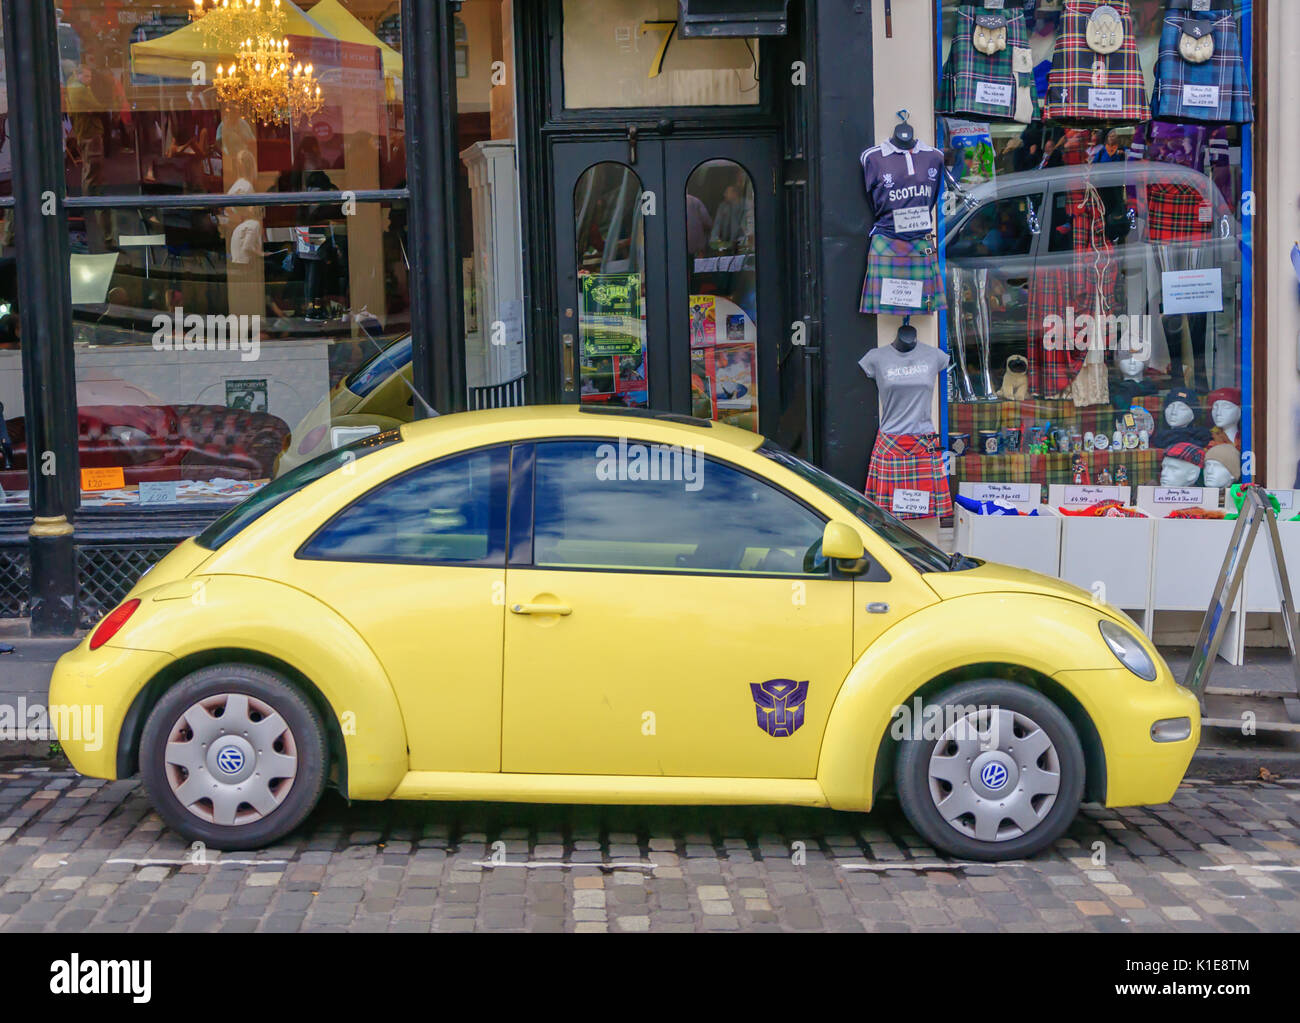 Edinburgh, Scotland, UK. 26th August, 2017. Yellow Volkswagen Beetle parked on the streets of the city at the end of the last week of the 70th Anniversary of the Edinburgh International Fringe Festival. Credit: Skully/Alamy Live News - Stock Image